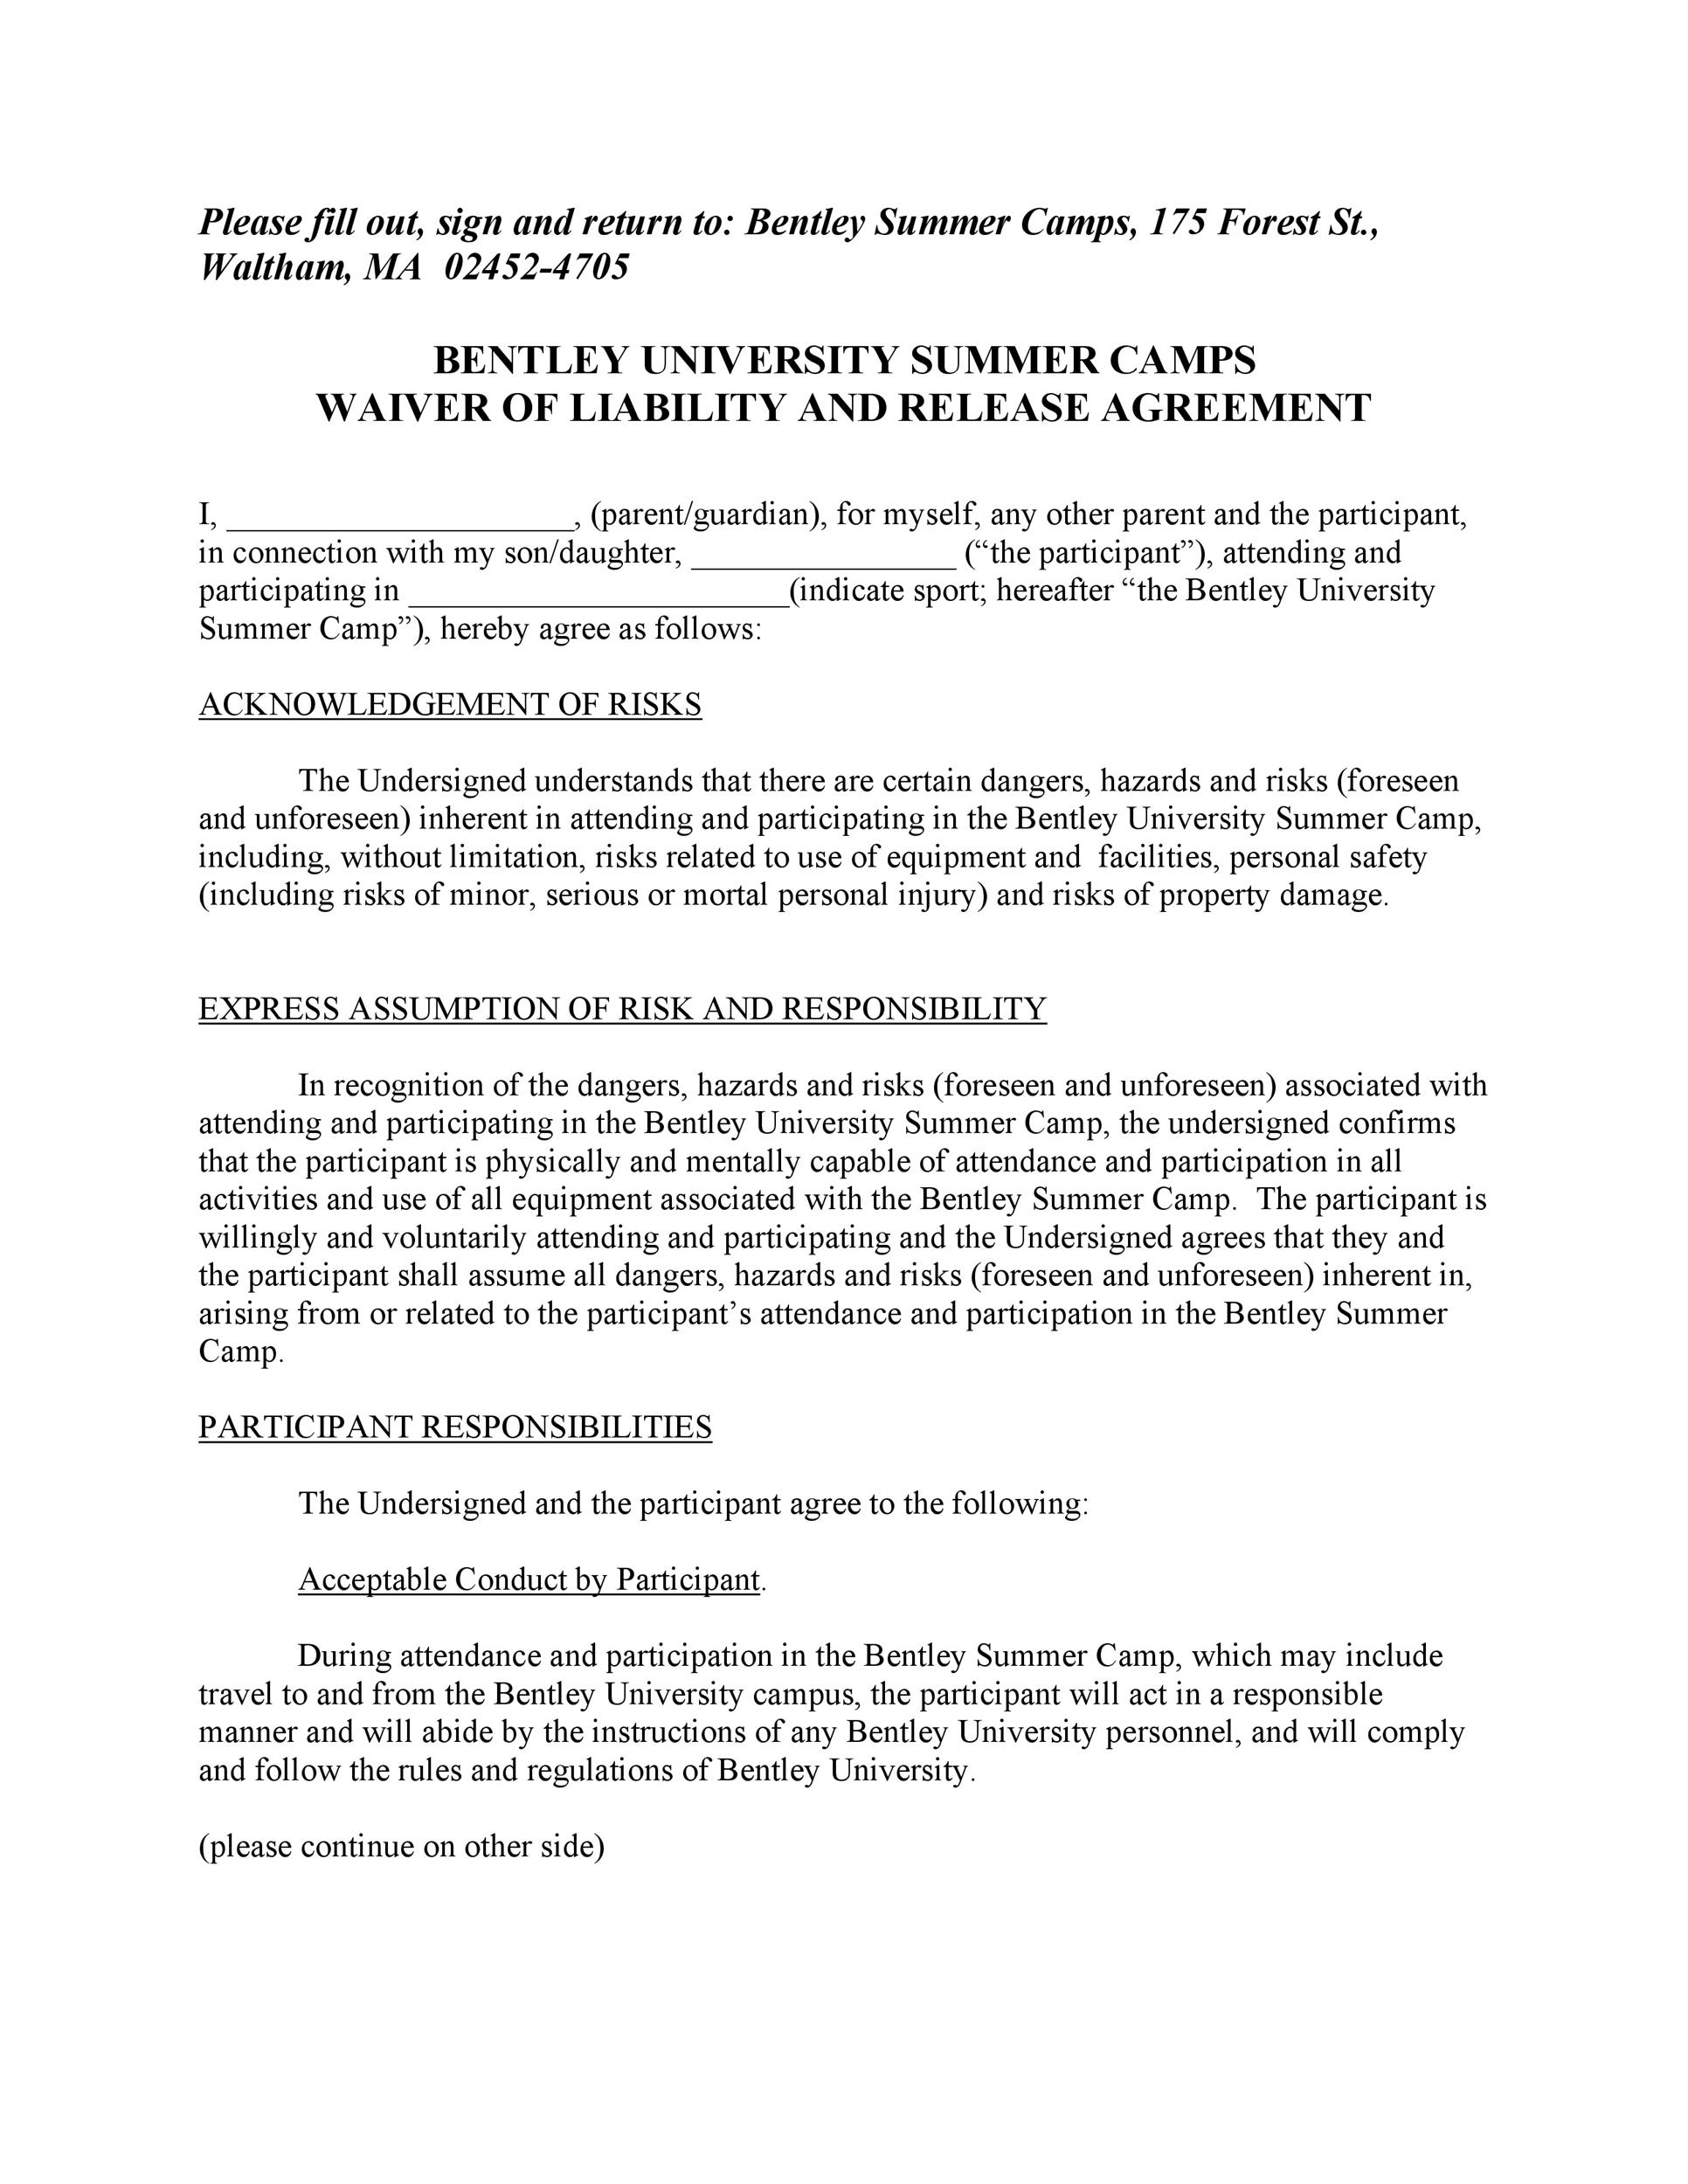 Free release of liability form 20